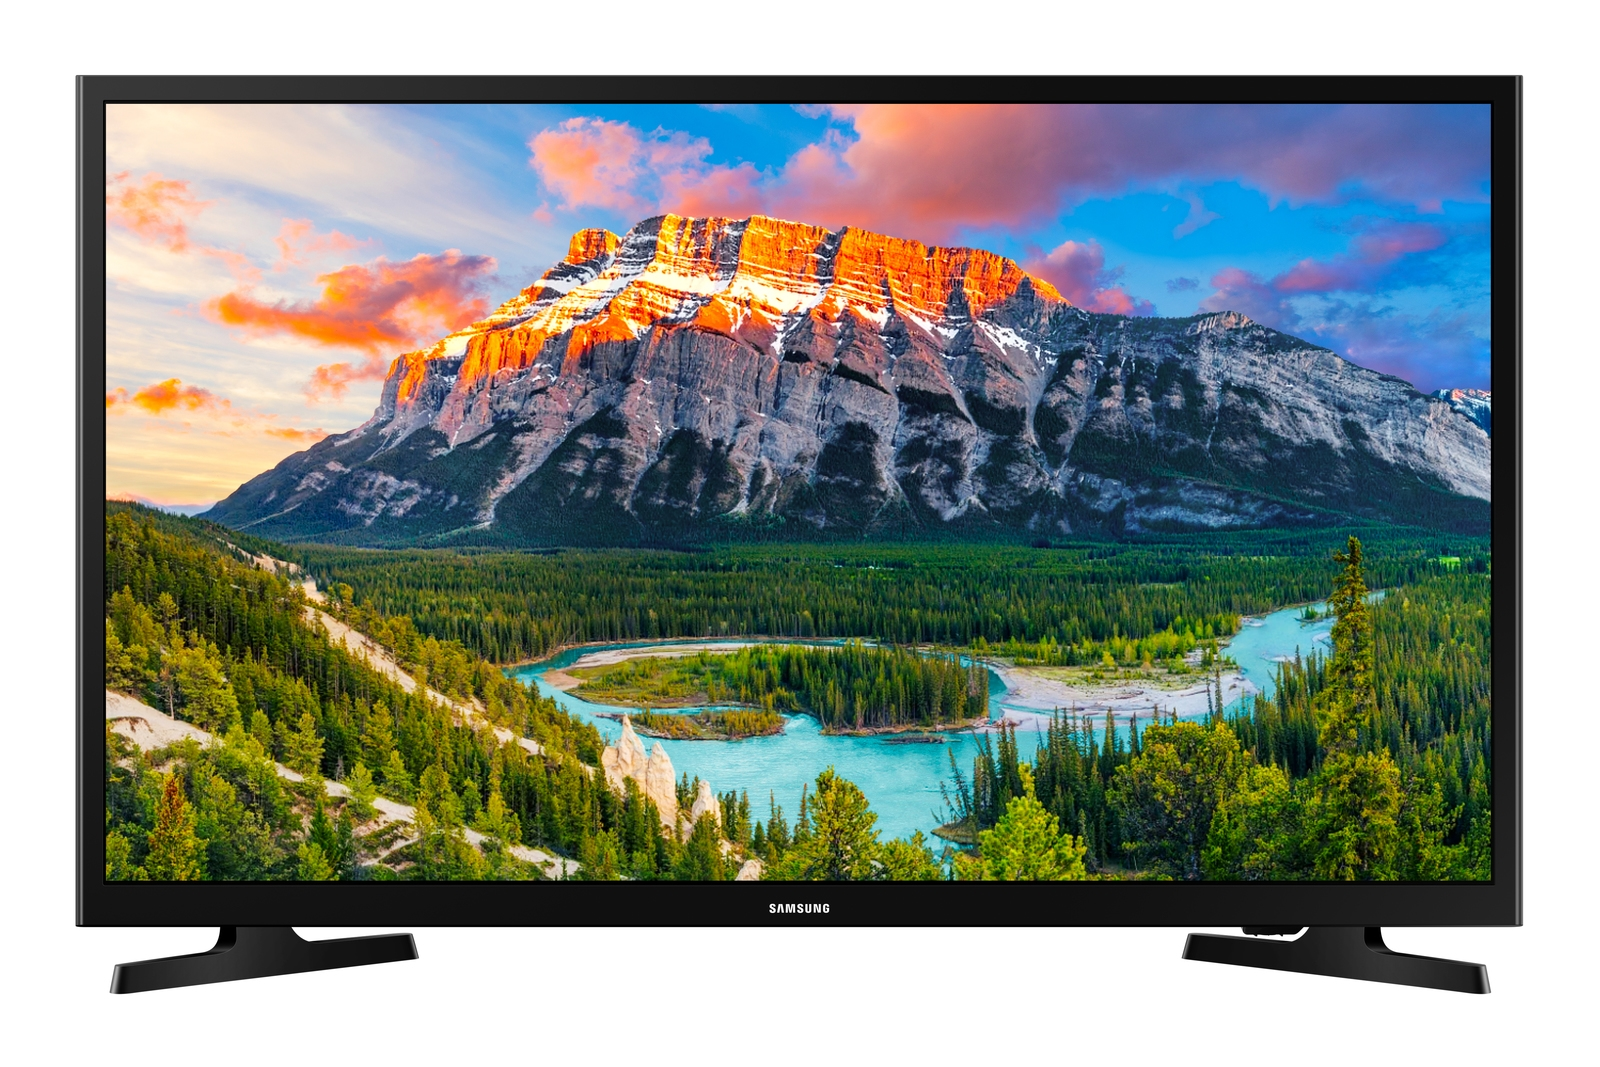 Samsung Flat Screen Tv Price 32